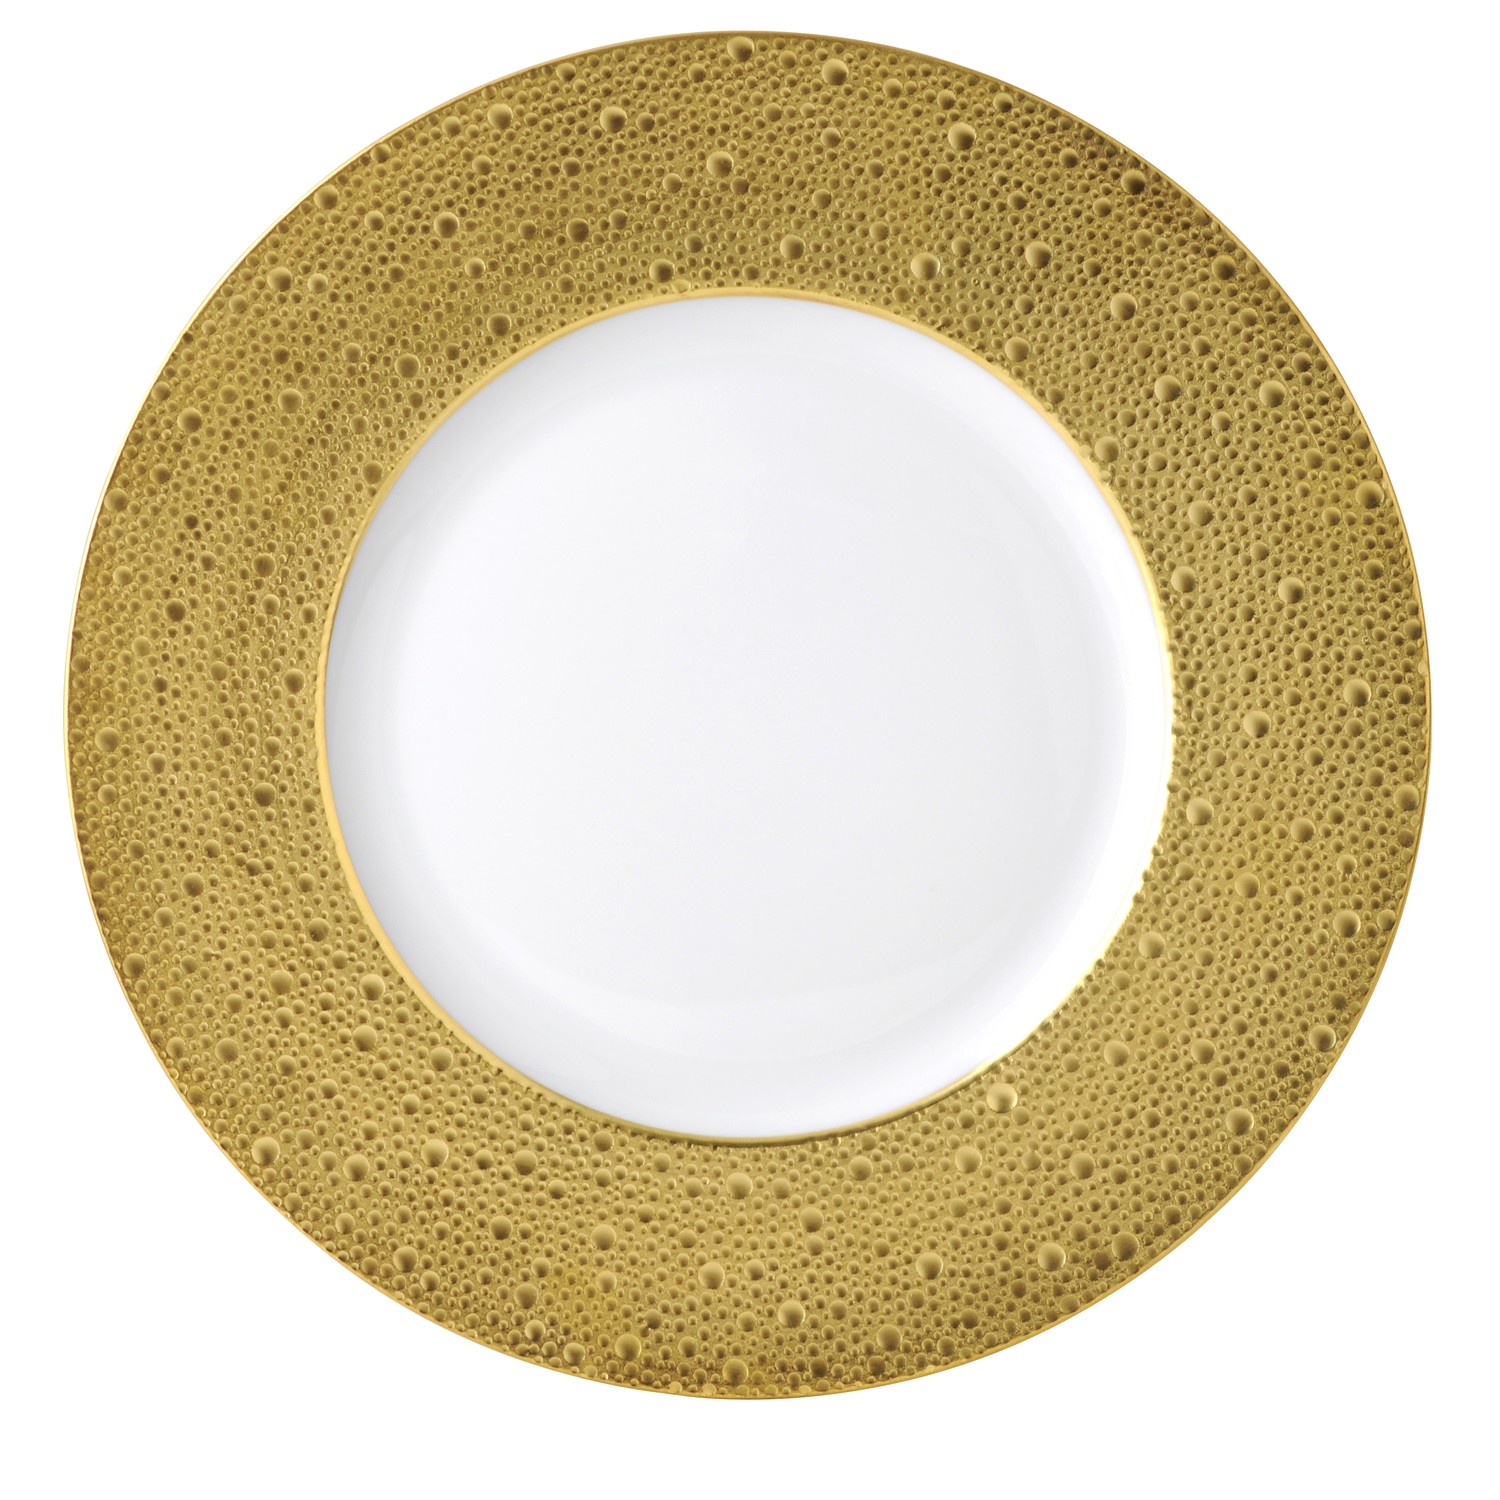 Bernardaud Ecume Gold Service Plate - 12.4 In